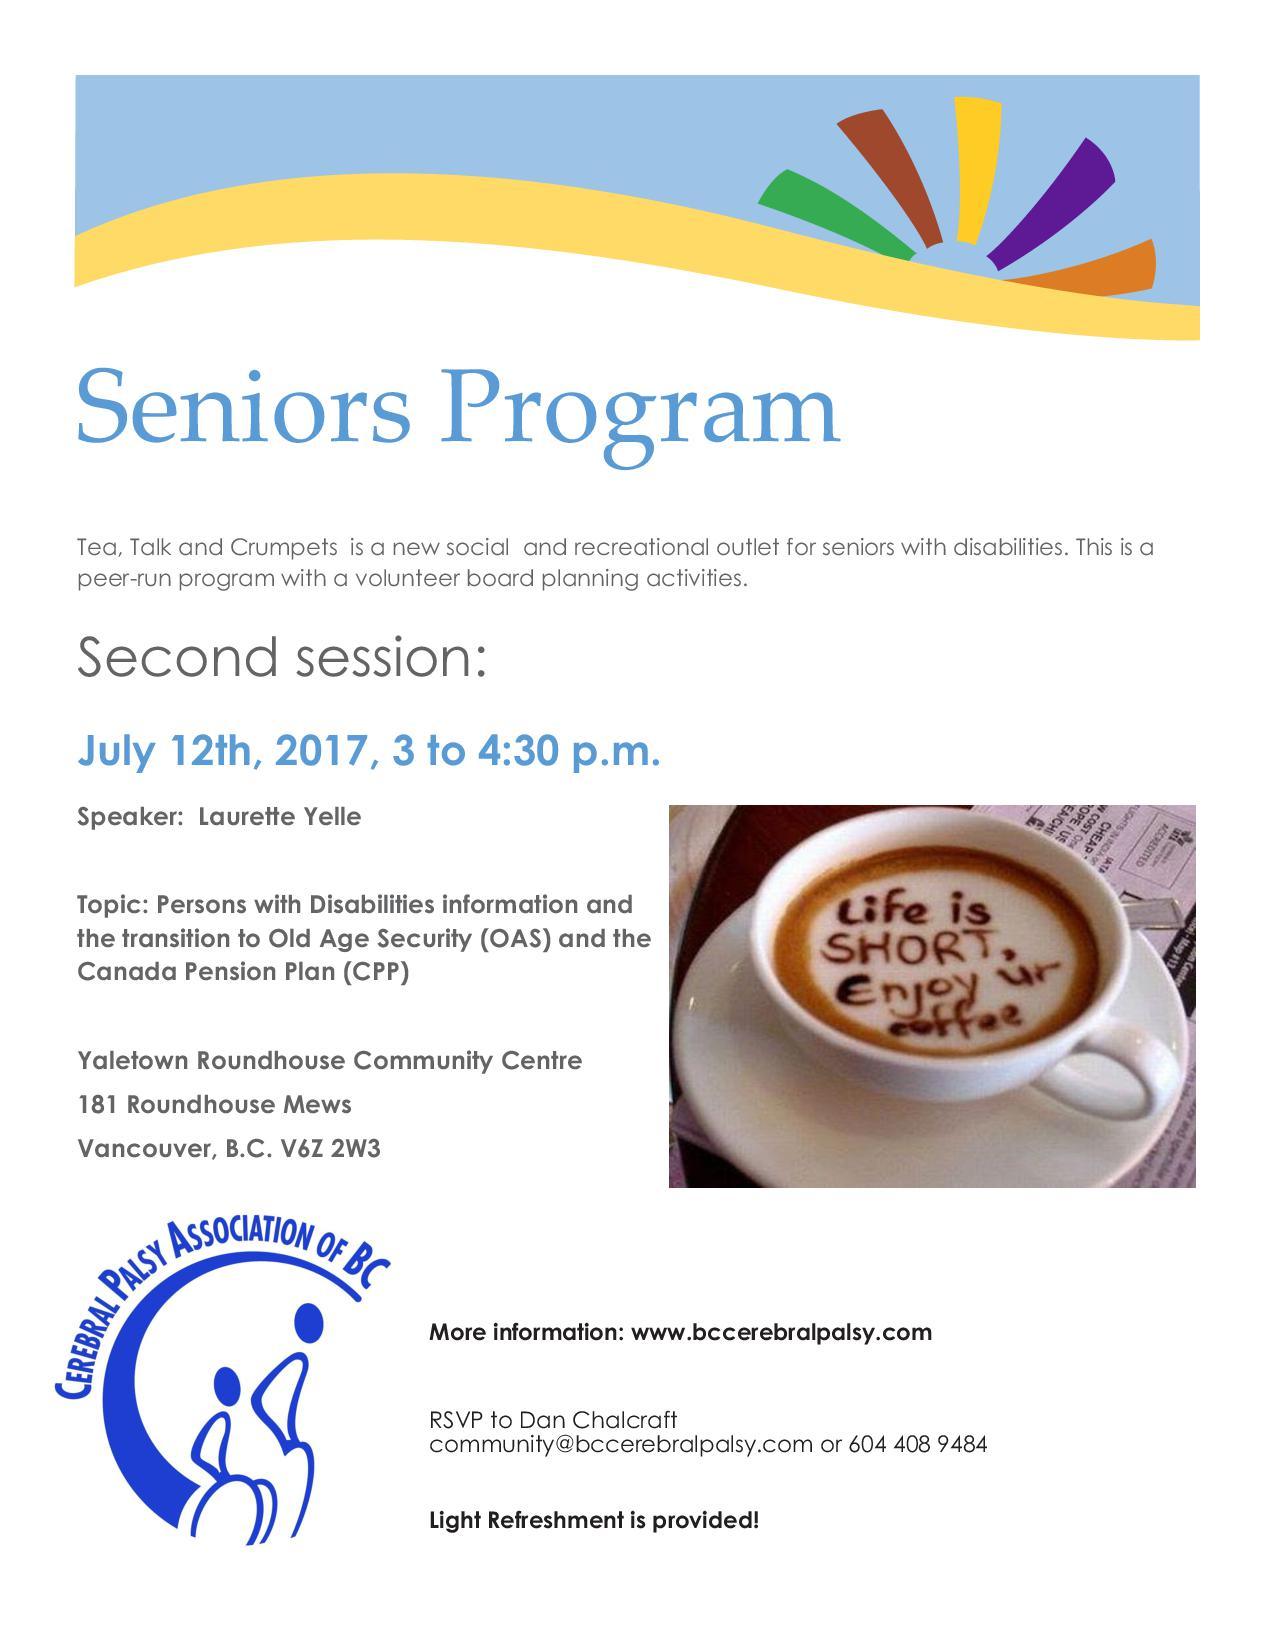 Seniors Program flyer July 12th, 2017